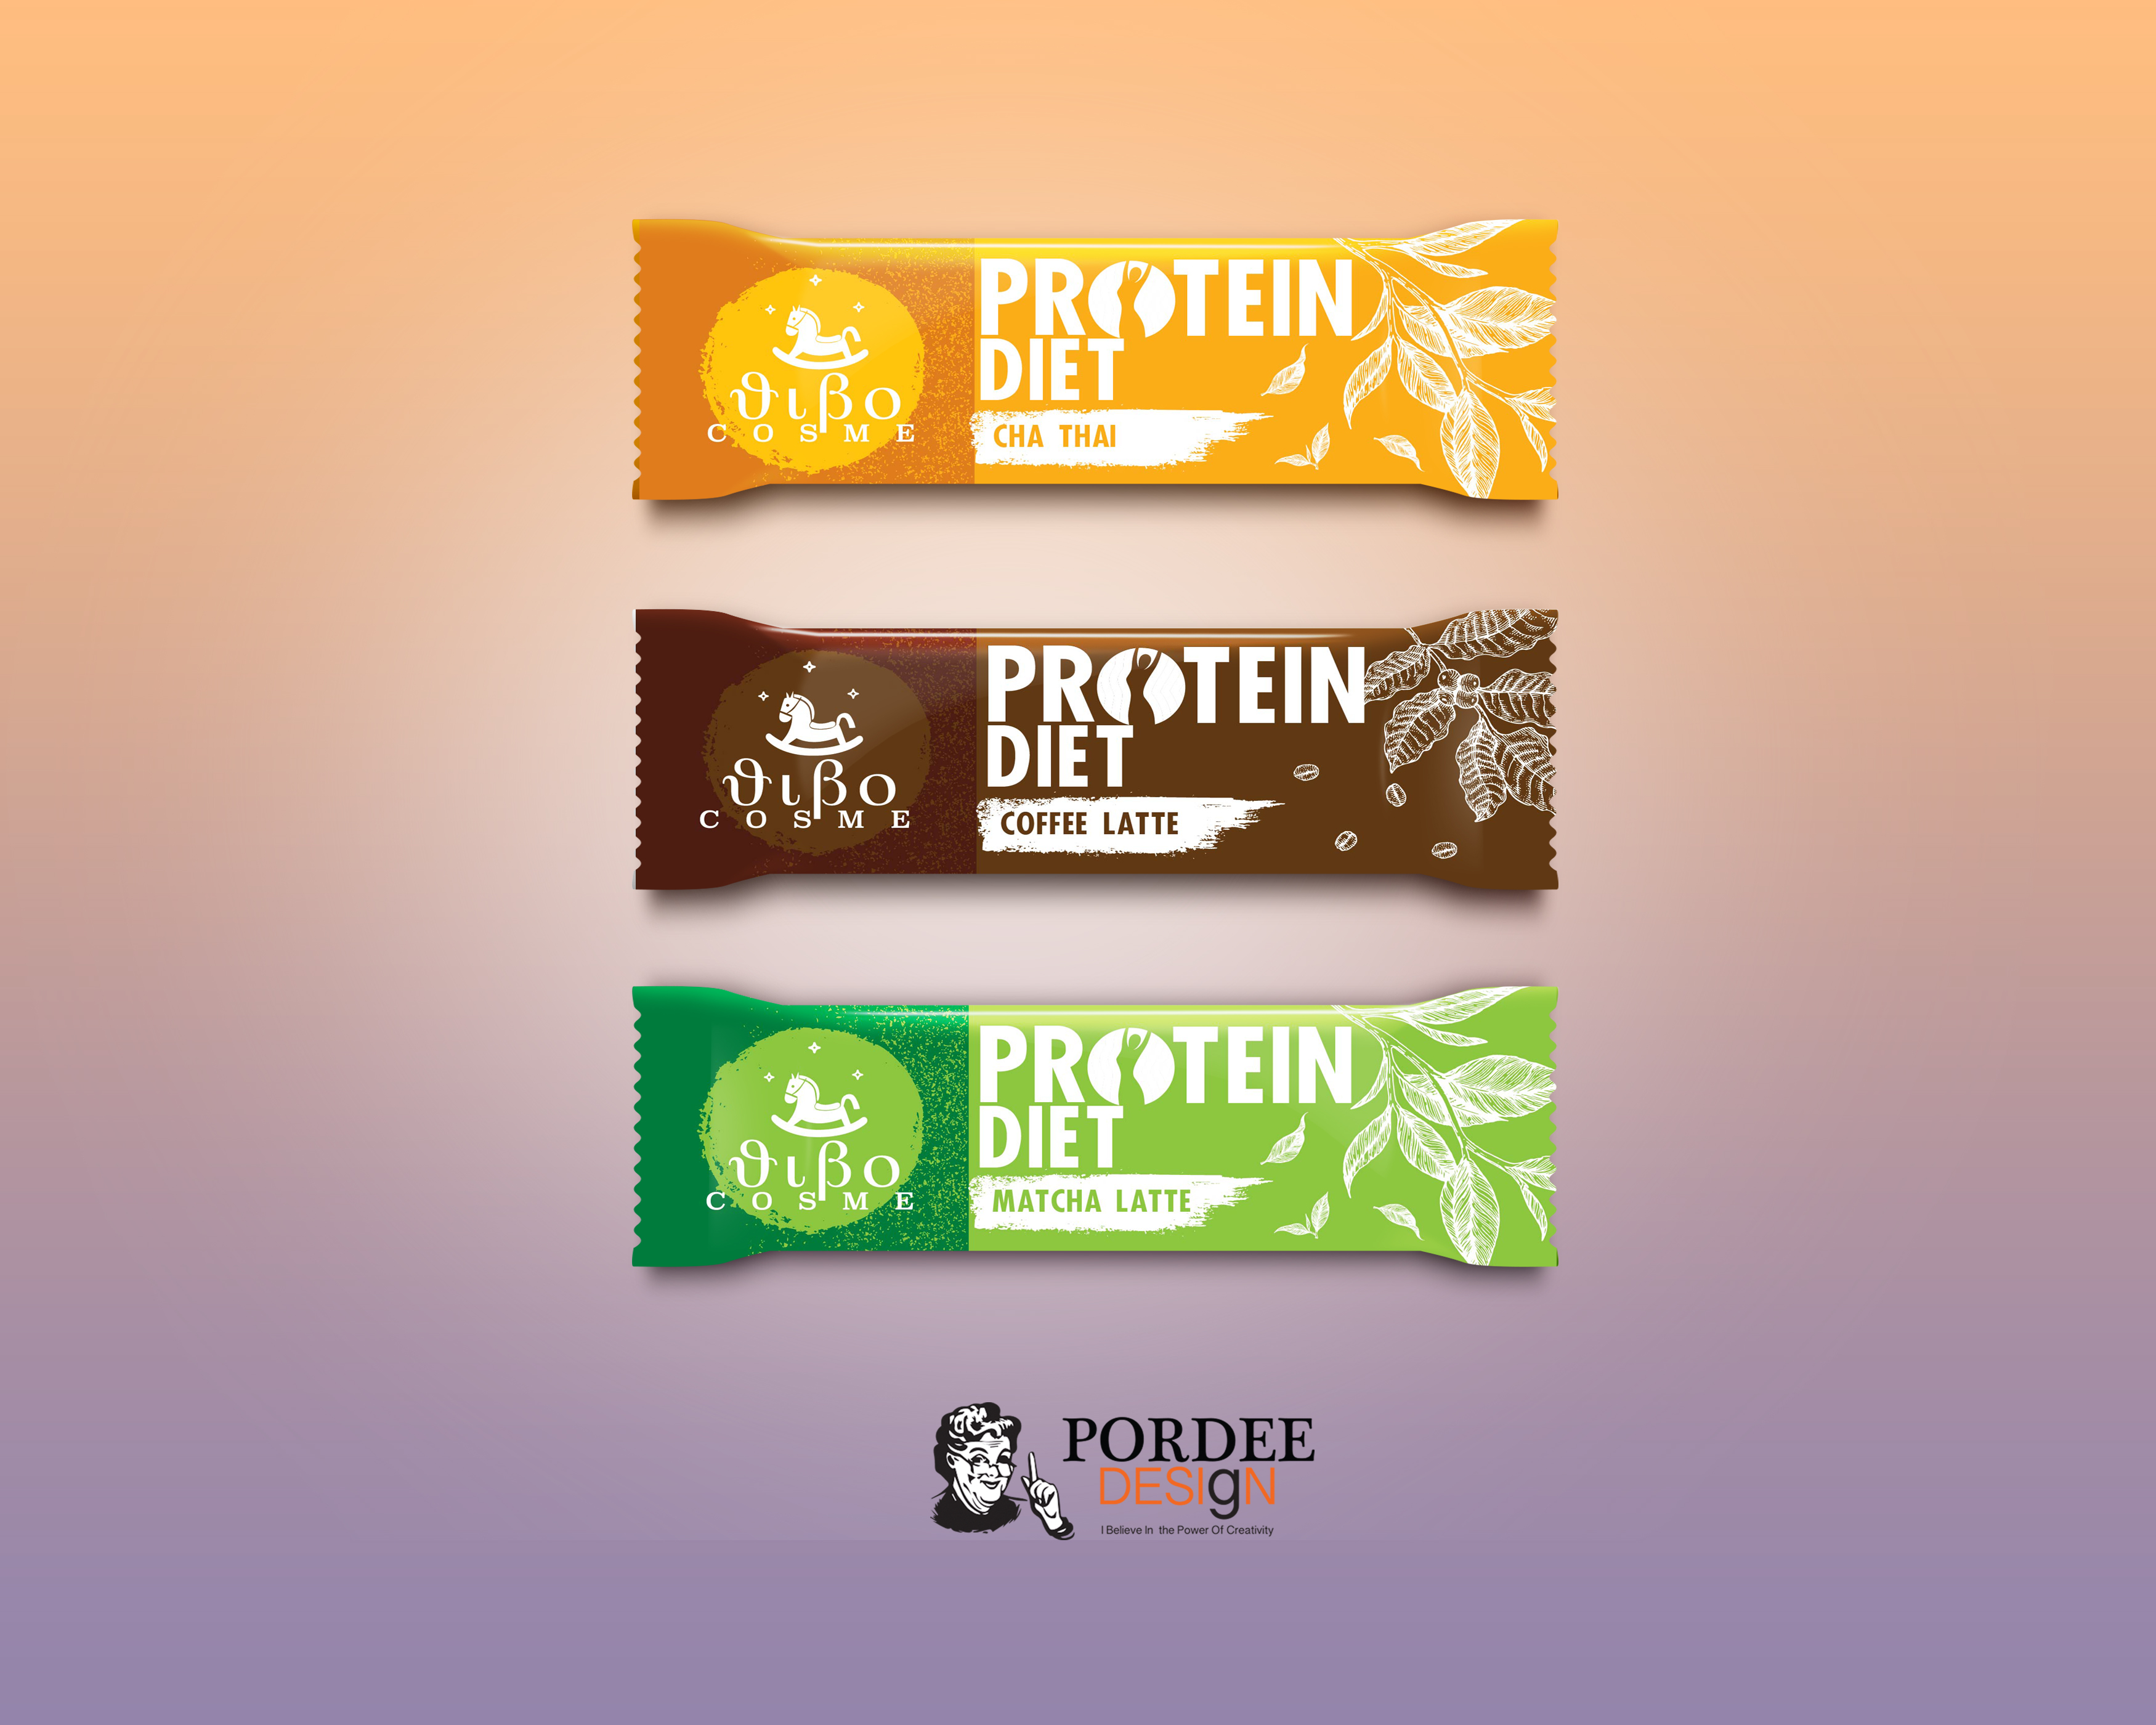 proteinDiet-Packaging-Mockup2-1